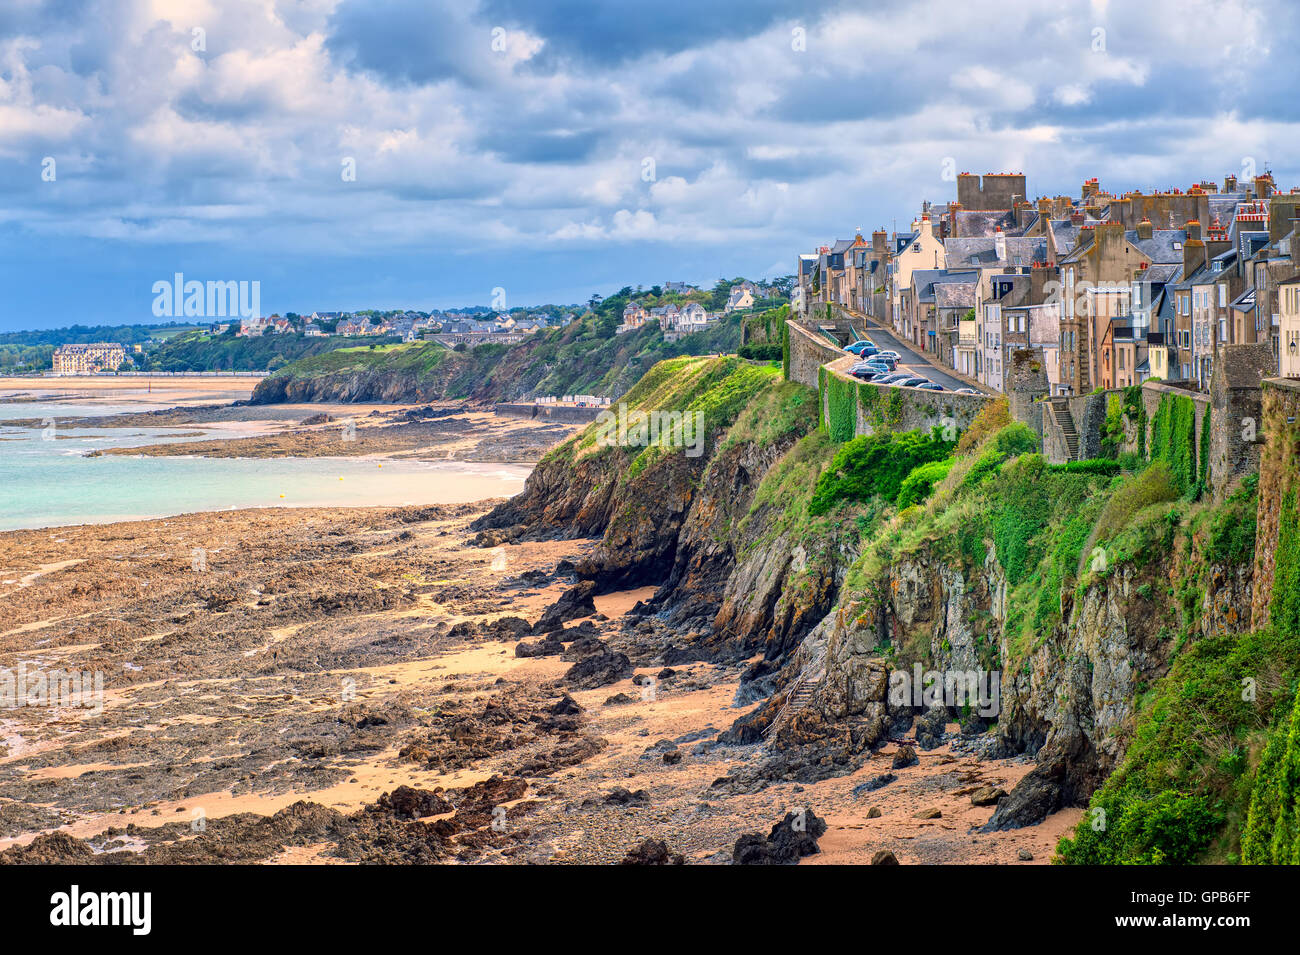 Beach on atlantic coast of Granville, Normandy, France - Stock Image